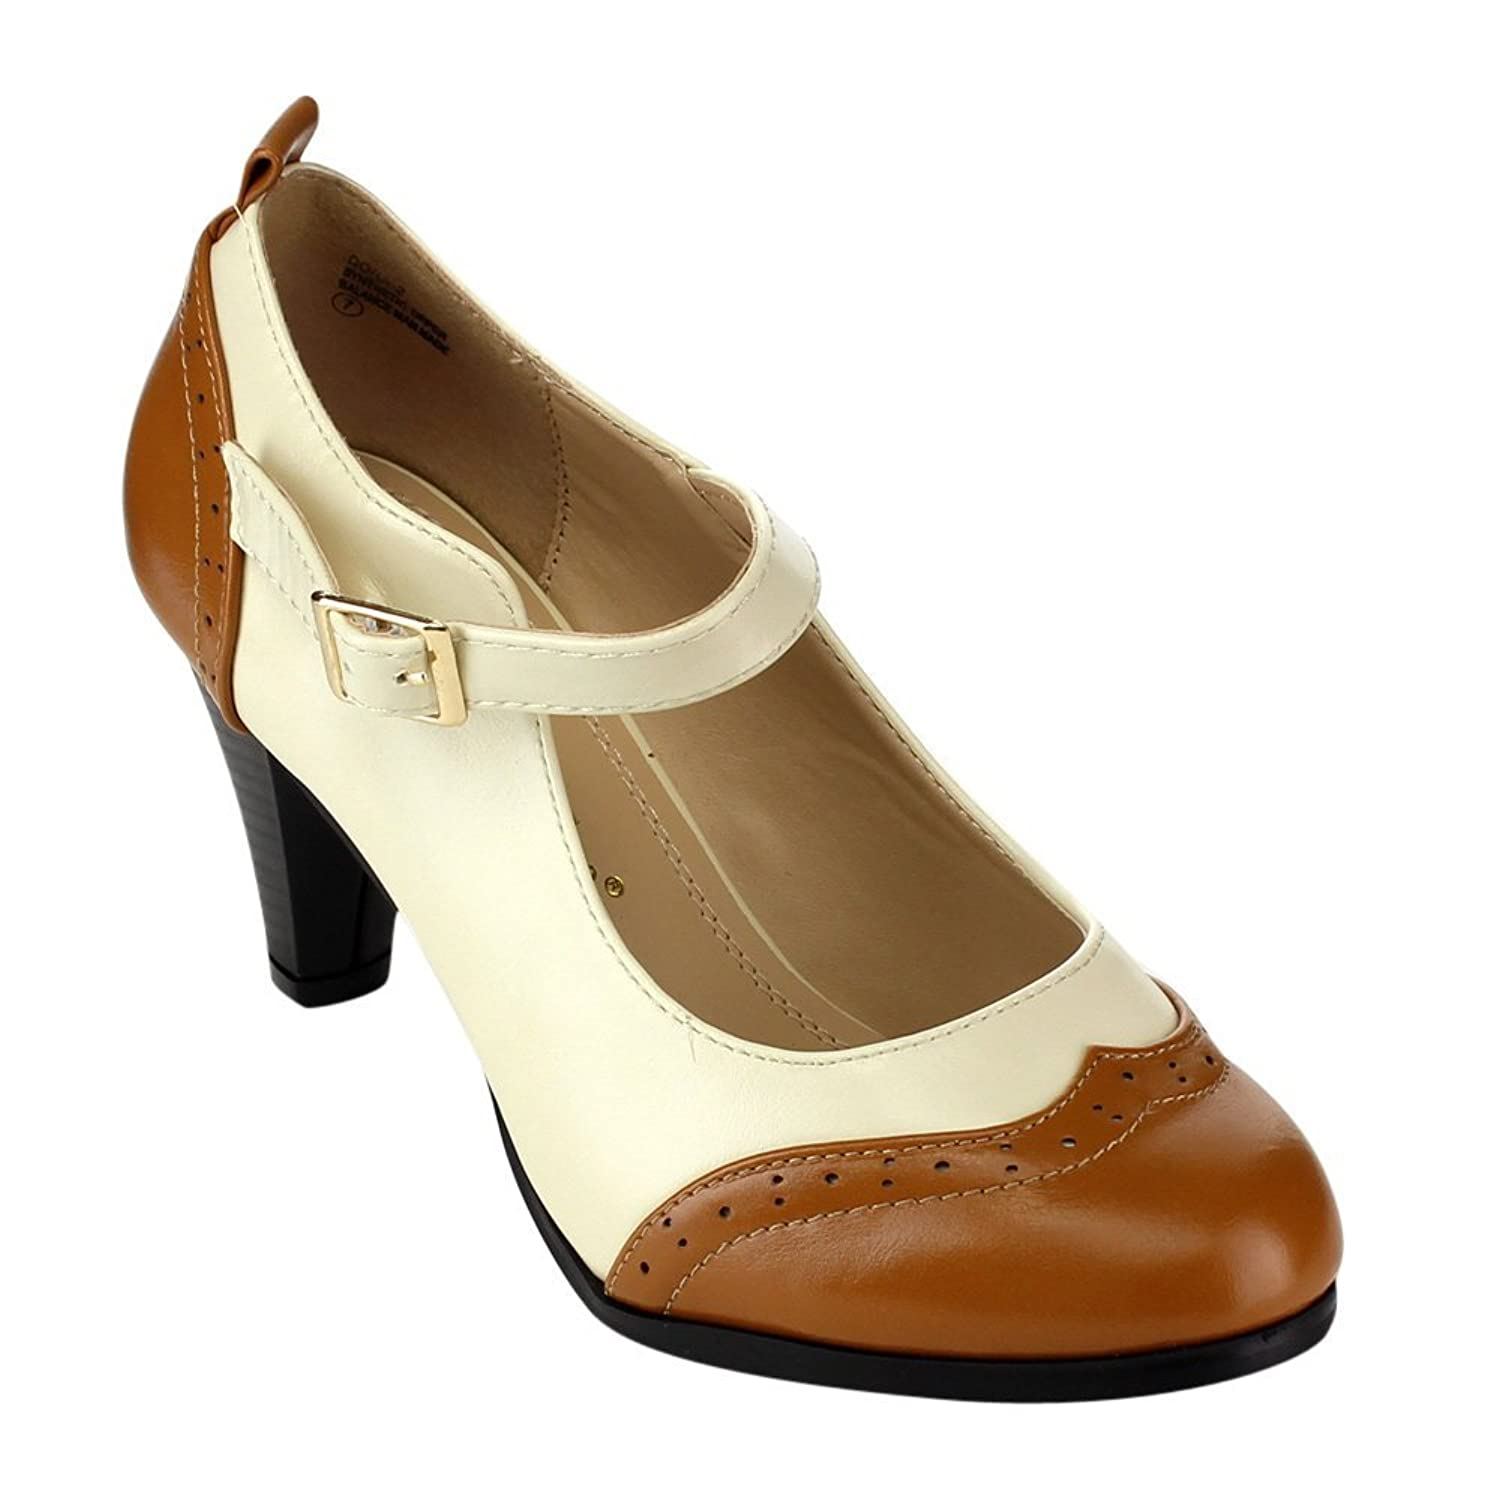 1920s Shoes UK – T-Bar, Oxfords, Flats Chase & Chloe Dora-2 Womens Round Toe Two Tone Mary Jane Pumps $32.99 AT vintagedancer.com